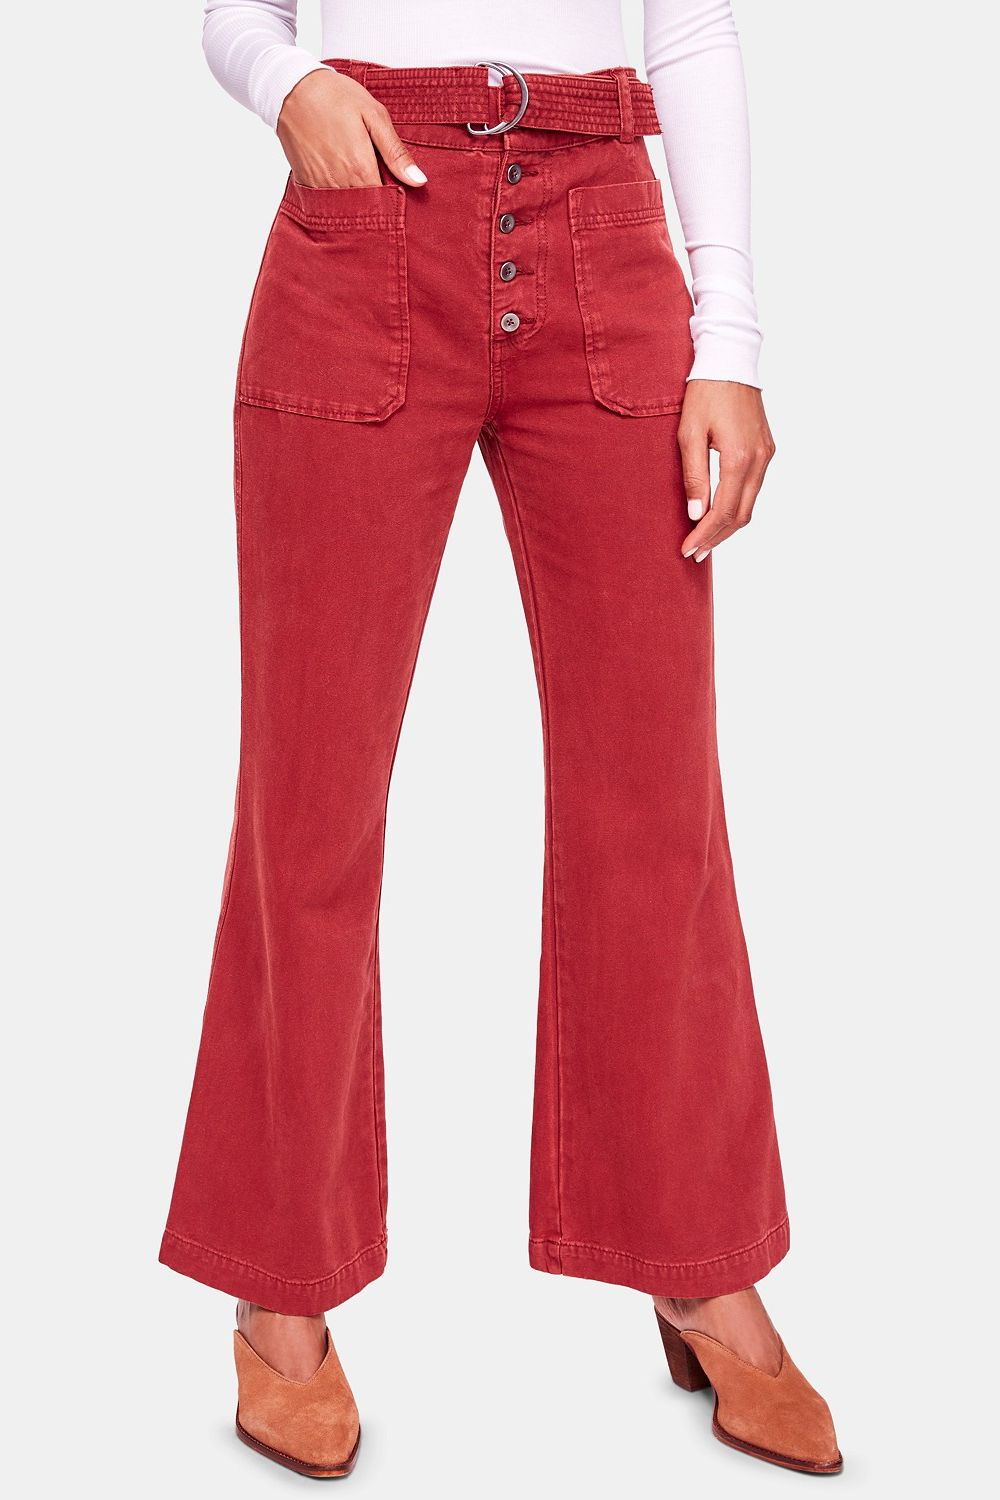 Free People Corin Flared Pants